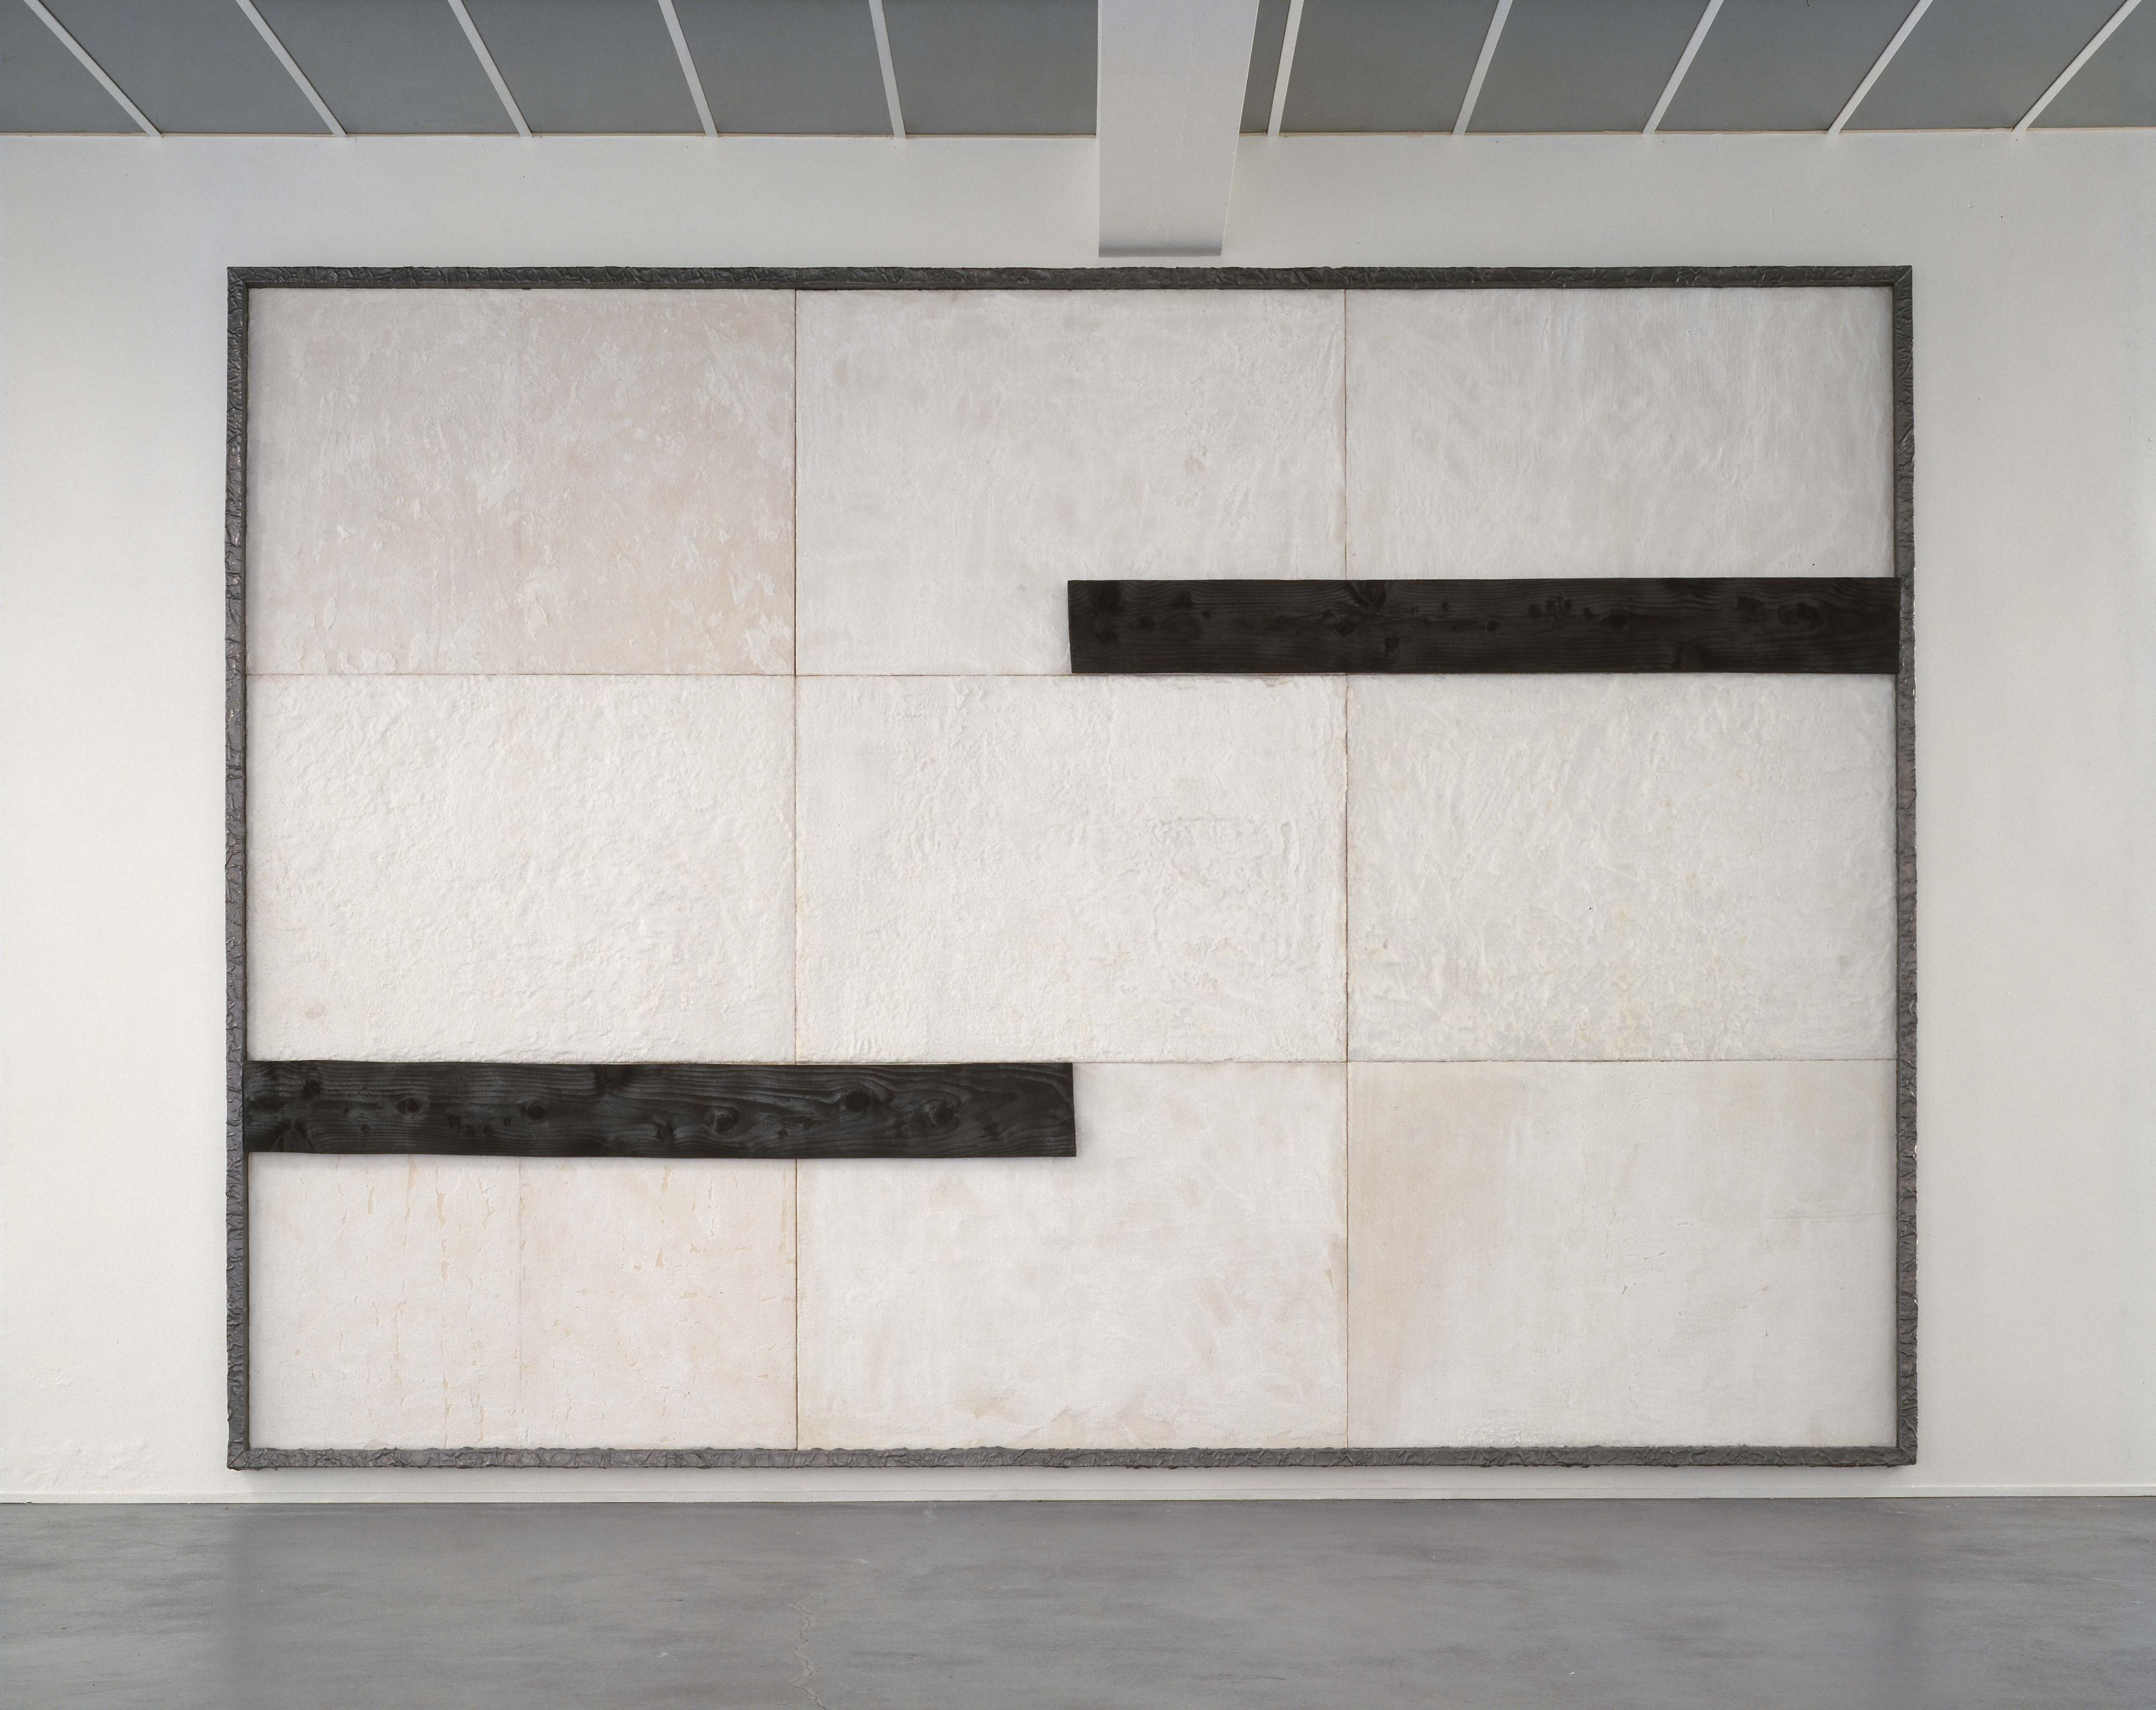 white and black grid painting made of wood, salt, and lead by pier paolo calzolari